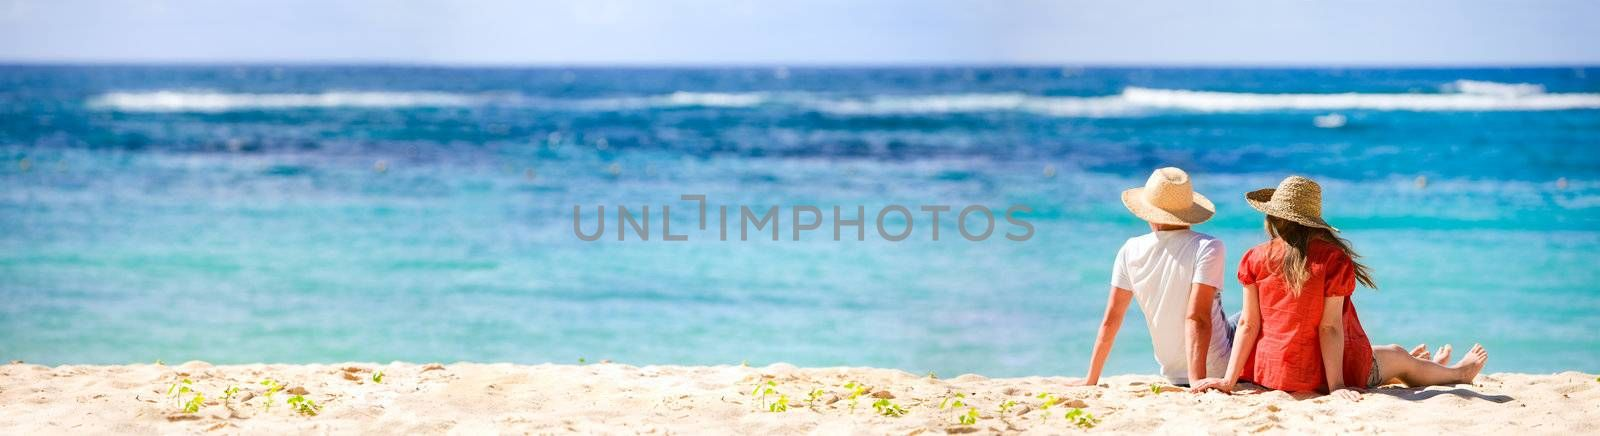 Panoramic photo of romantic couple in tropical paradise